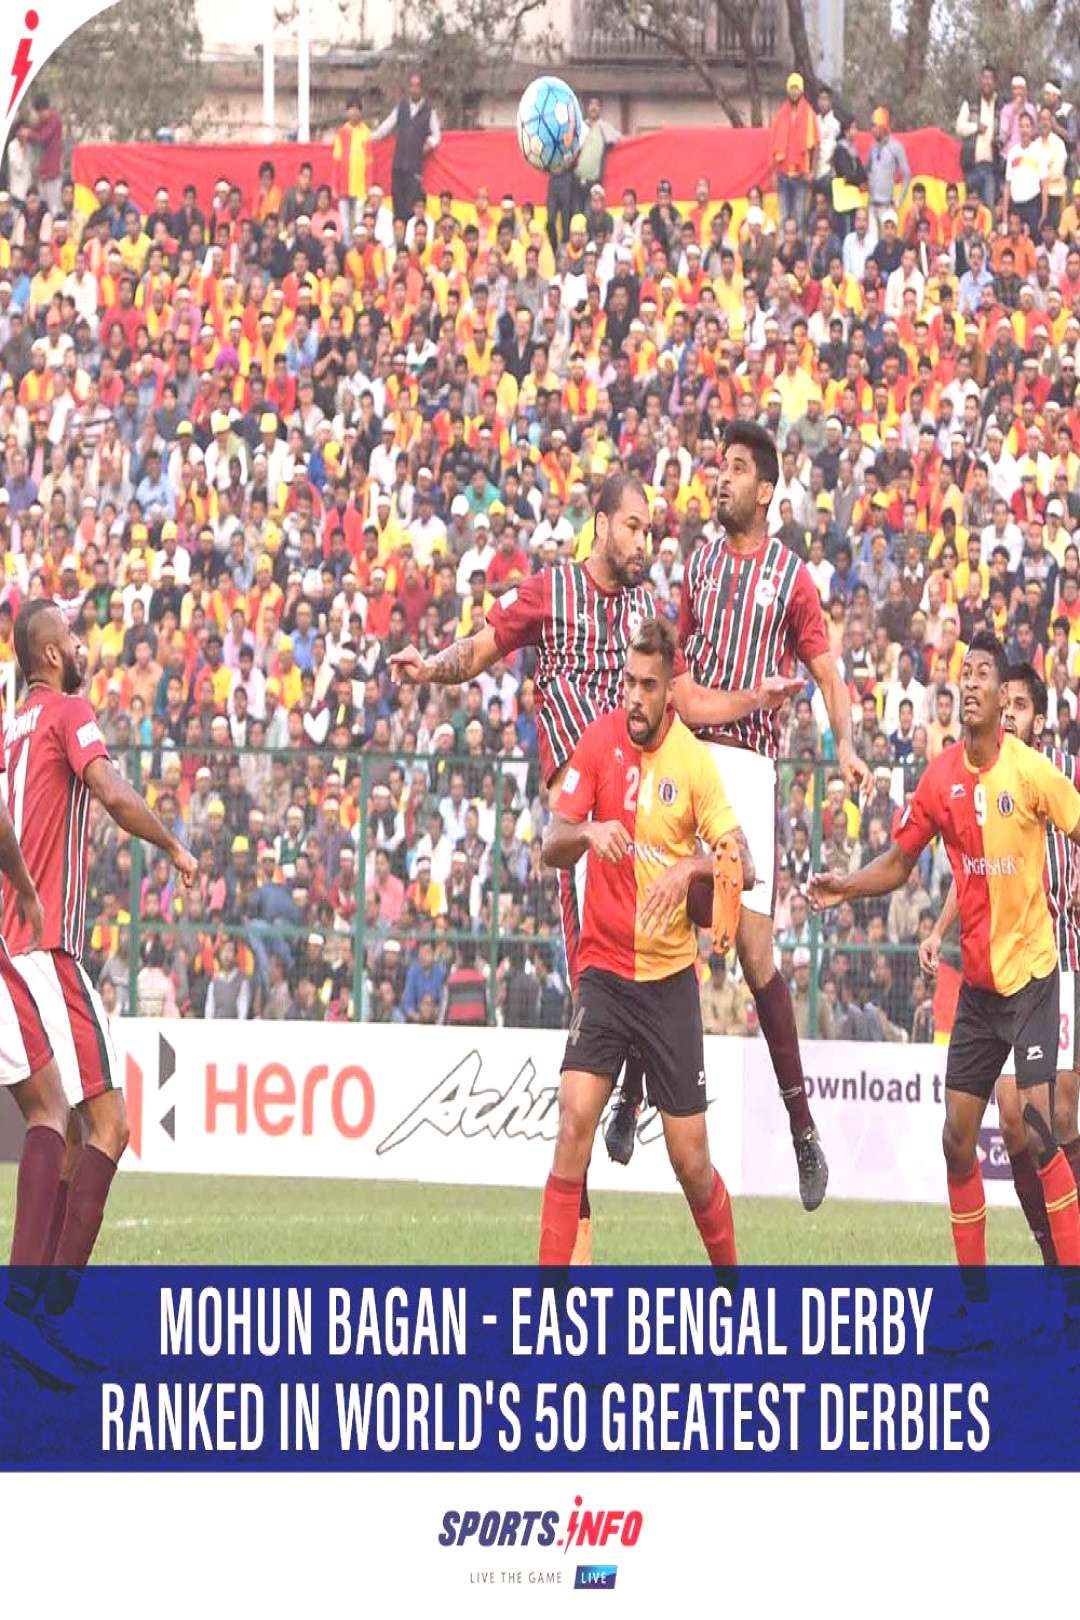 Record of East Bengal vs Mohun Bagan Derby UKs football magazine FourFourTwo ranked the match in t